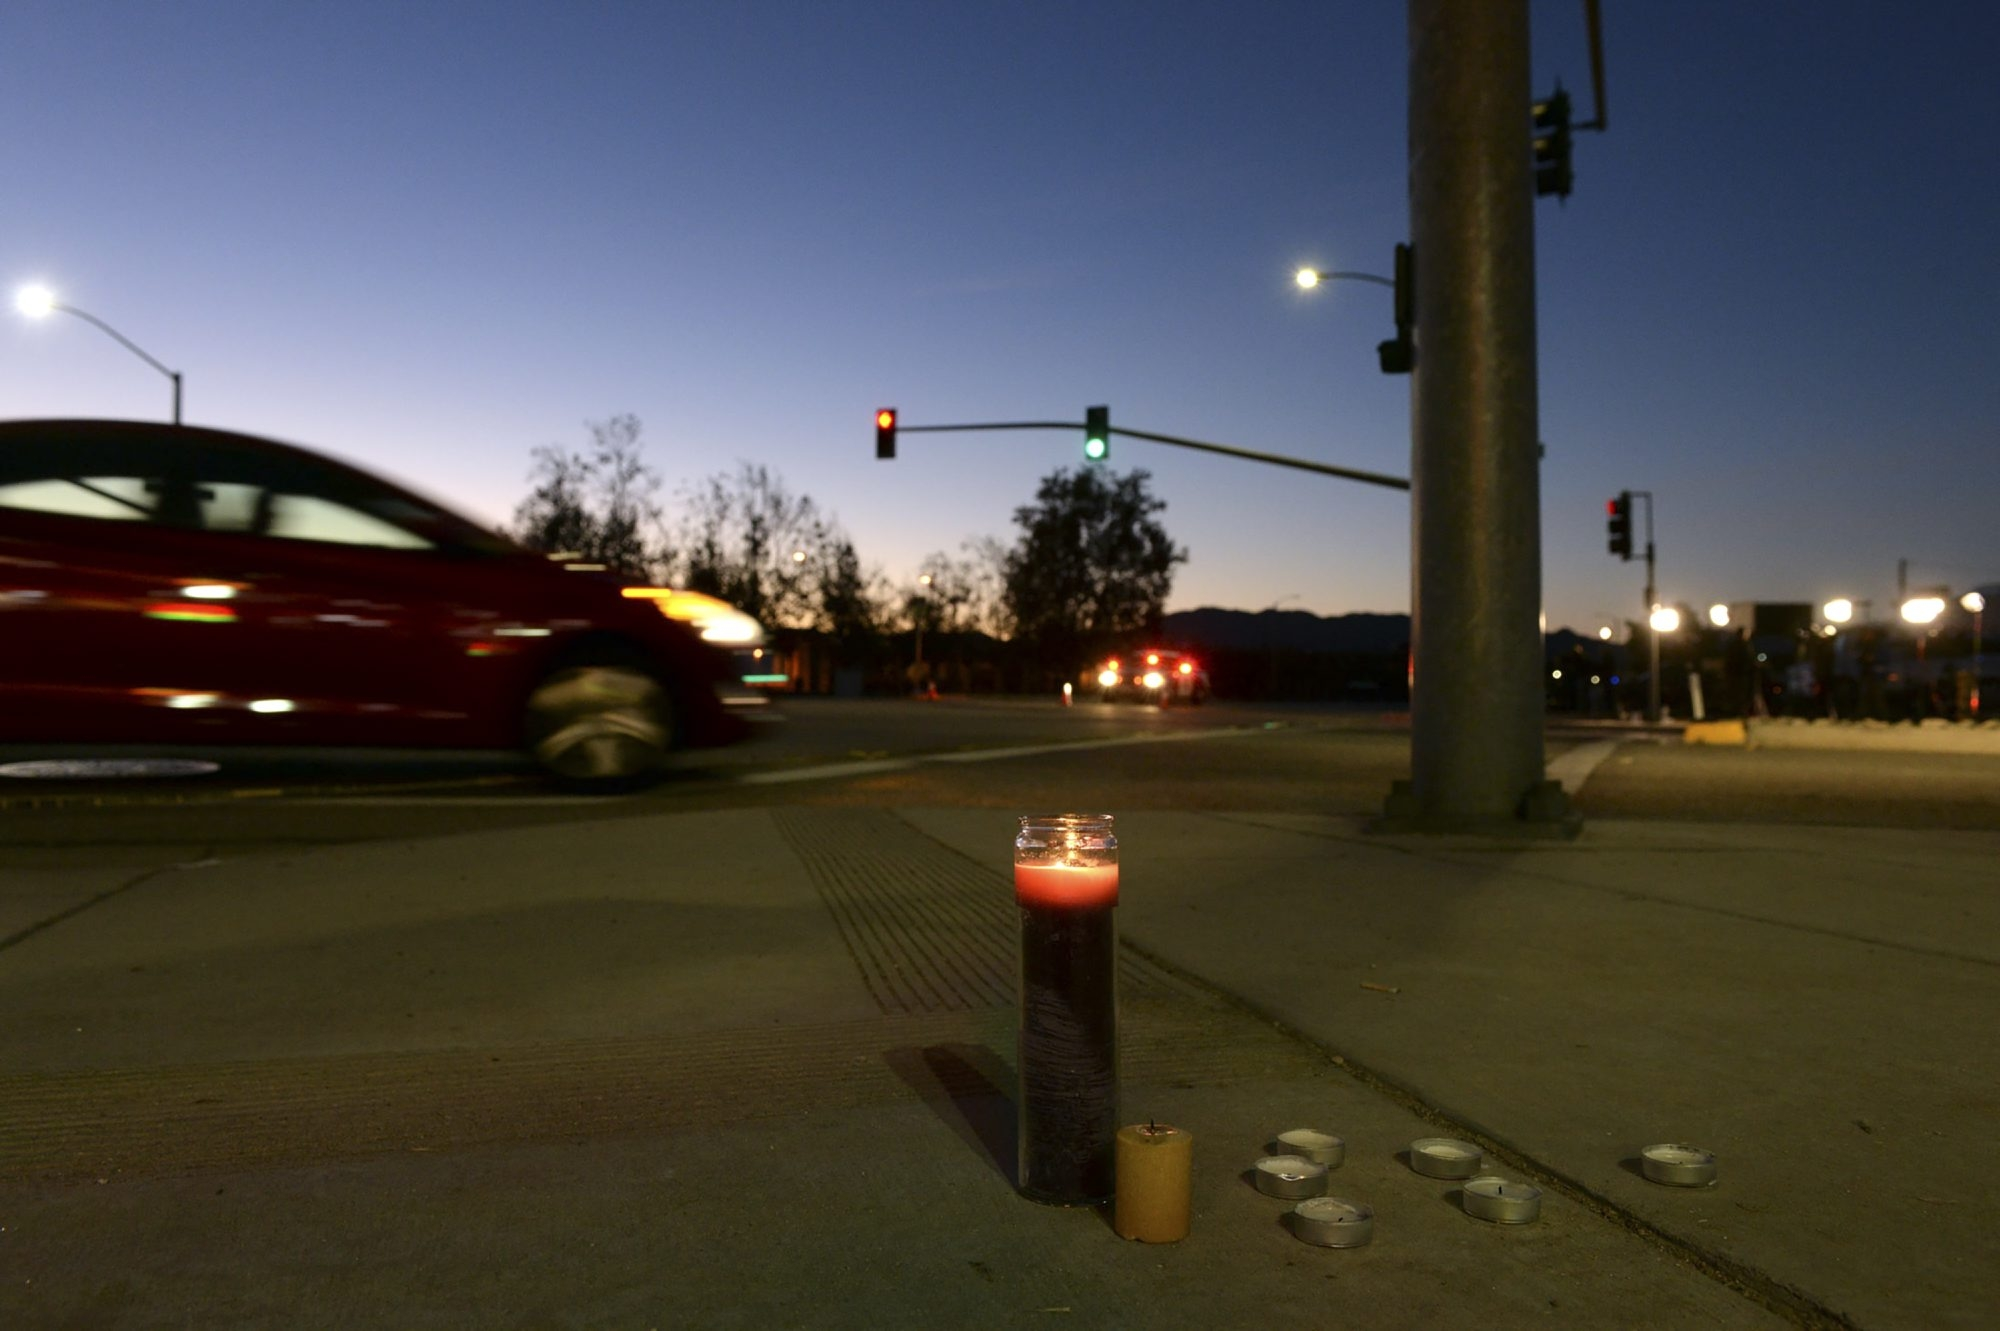 A makeshift memorial near where police have established a perimeter for the mass shooting at the Inland Regional Center in San Bernardino, Calif., on Dec. 3. (The New York Times)